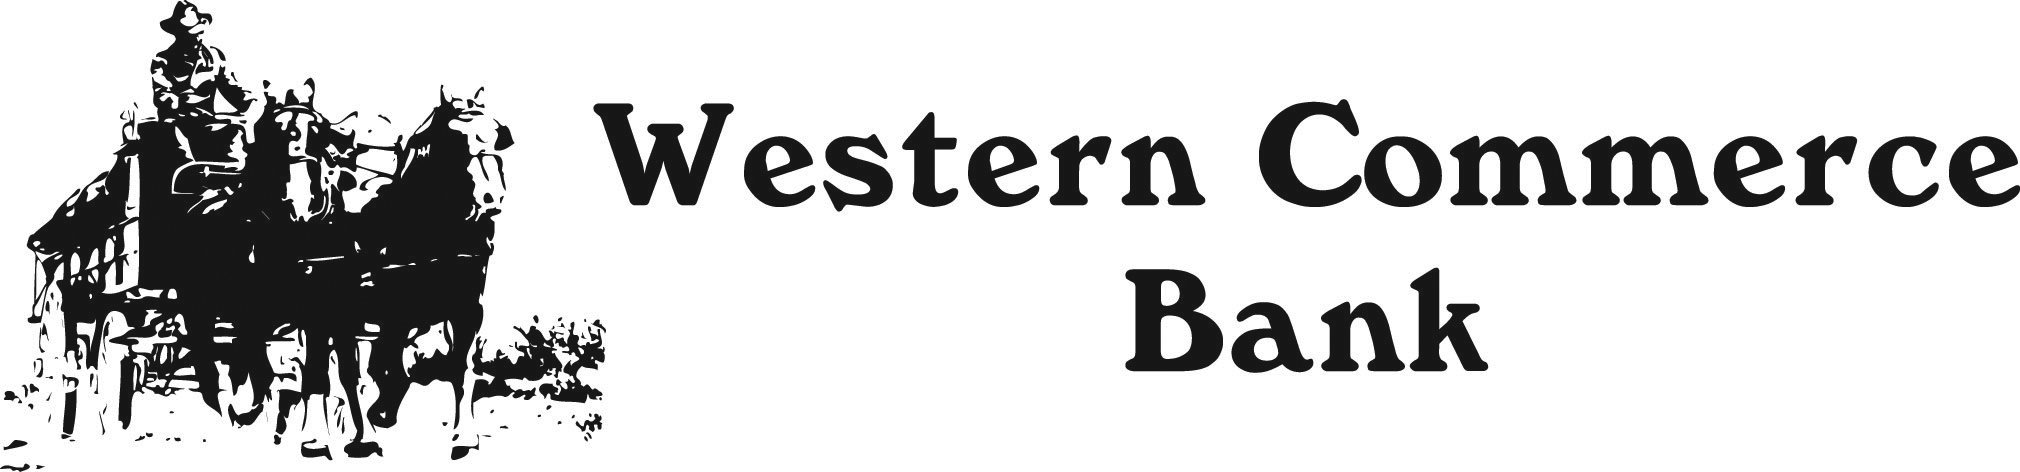 Western Commerce Bank Slide Image